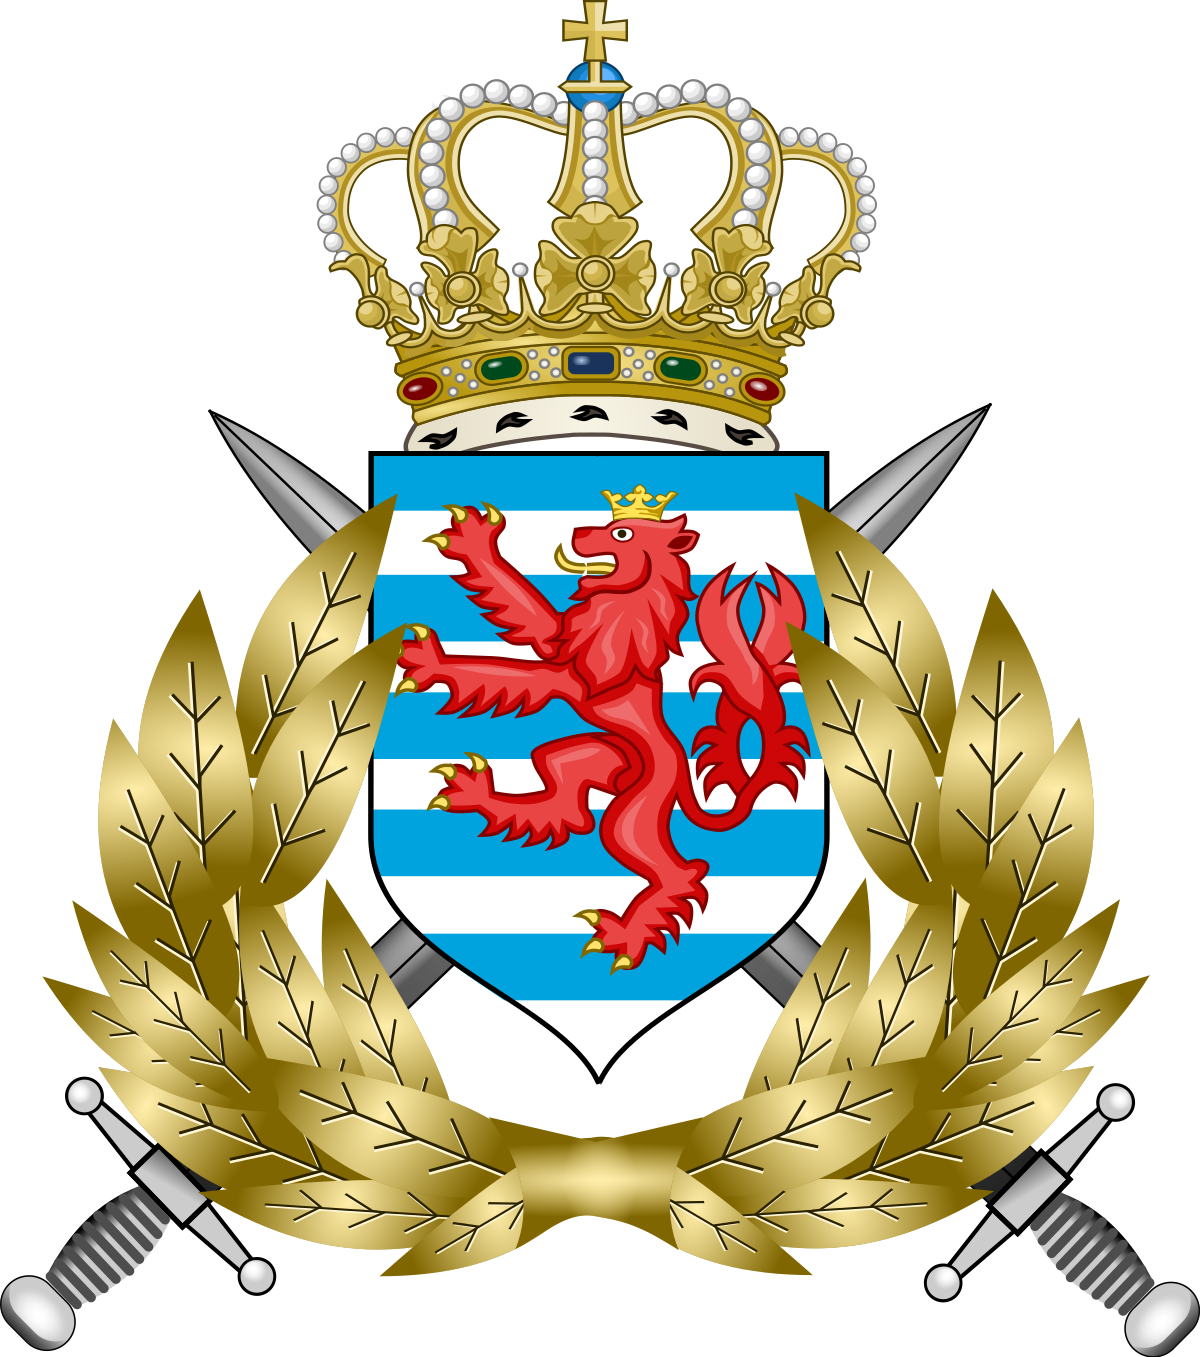 Luxembourg army wikipedia . Pistol clipart military police